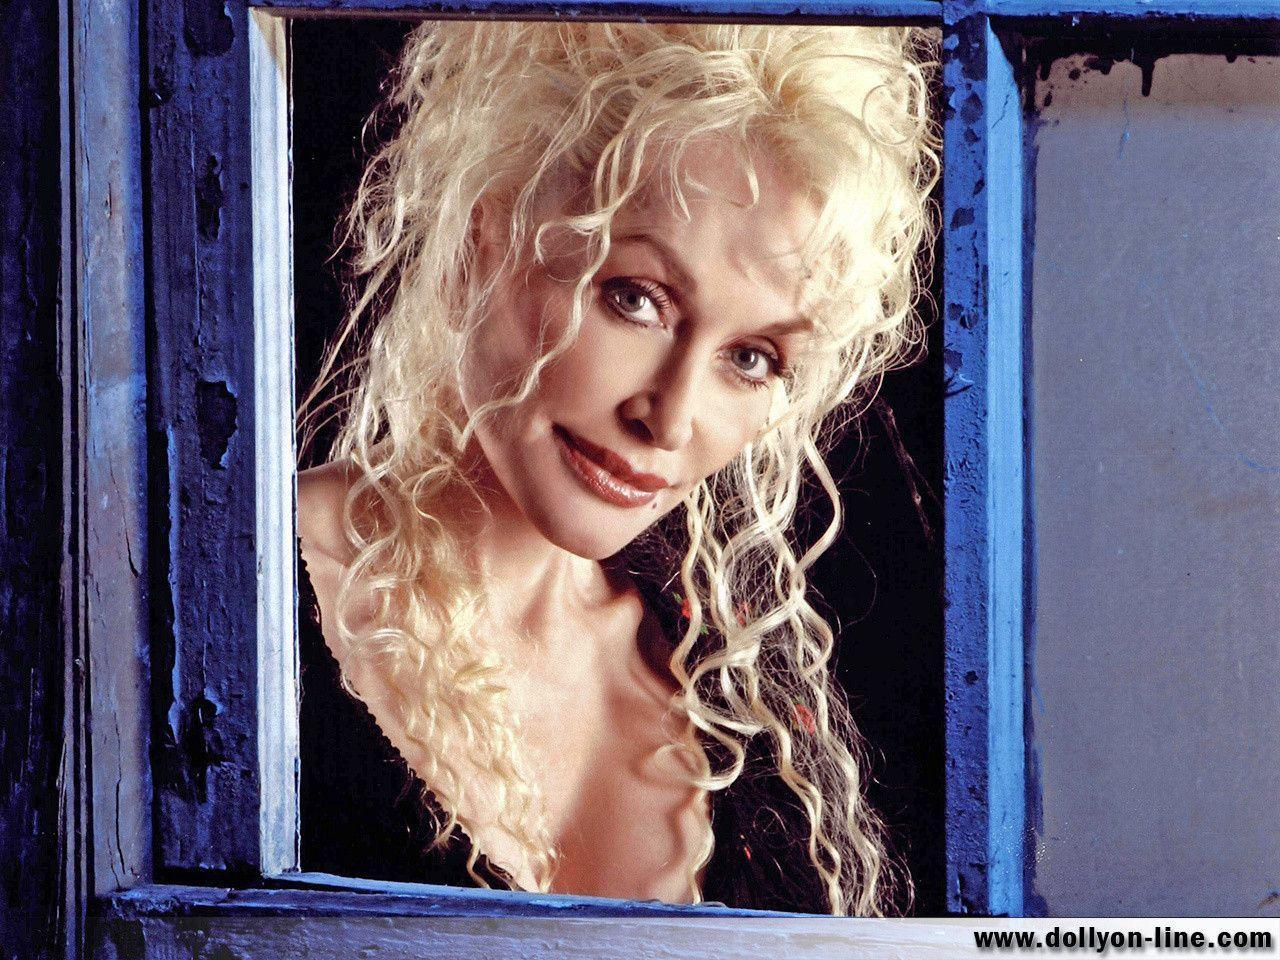 Dolly Parton - Dolly Parton Wallpaper (10888208) - Fanpop